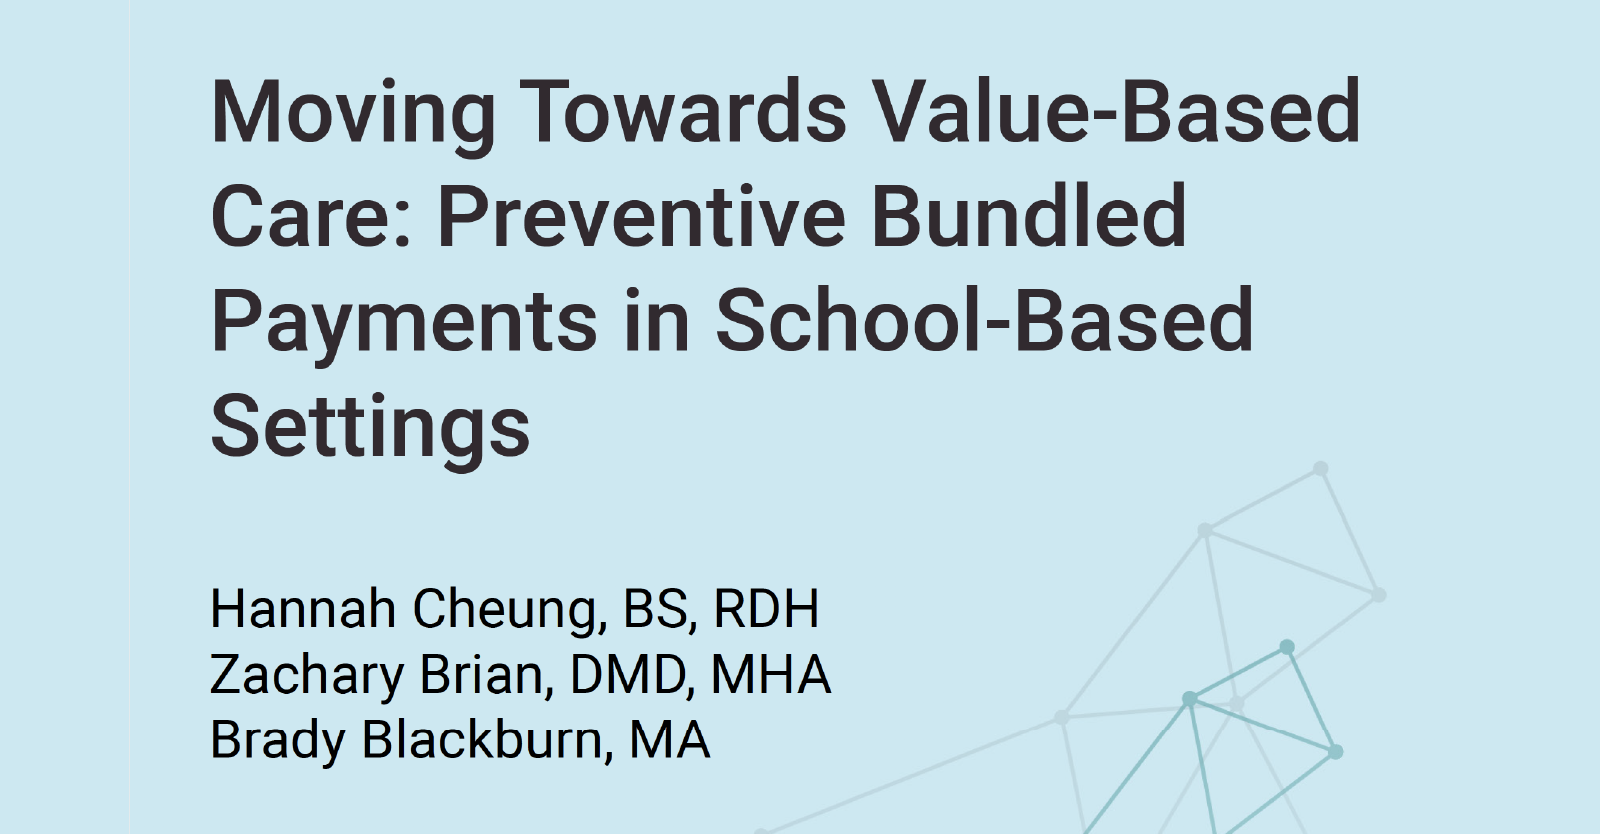 Moving Towards Value-Based Care: Preventive Bundled Payments in School-Based Settings